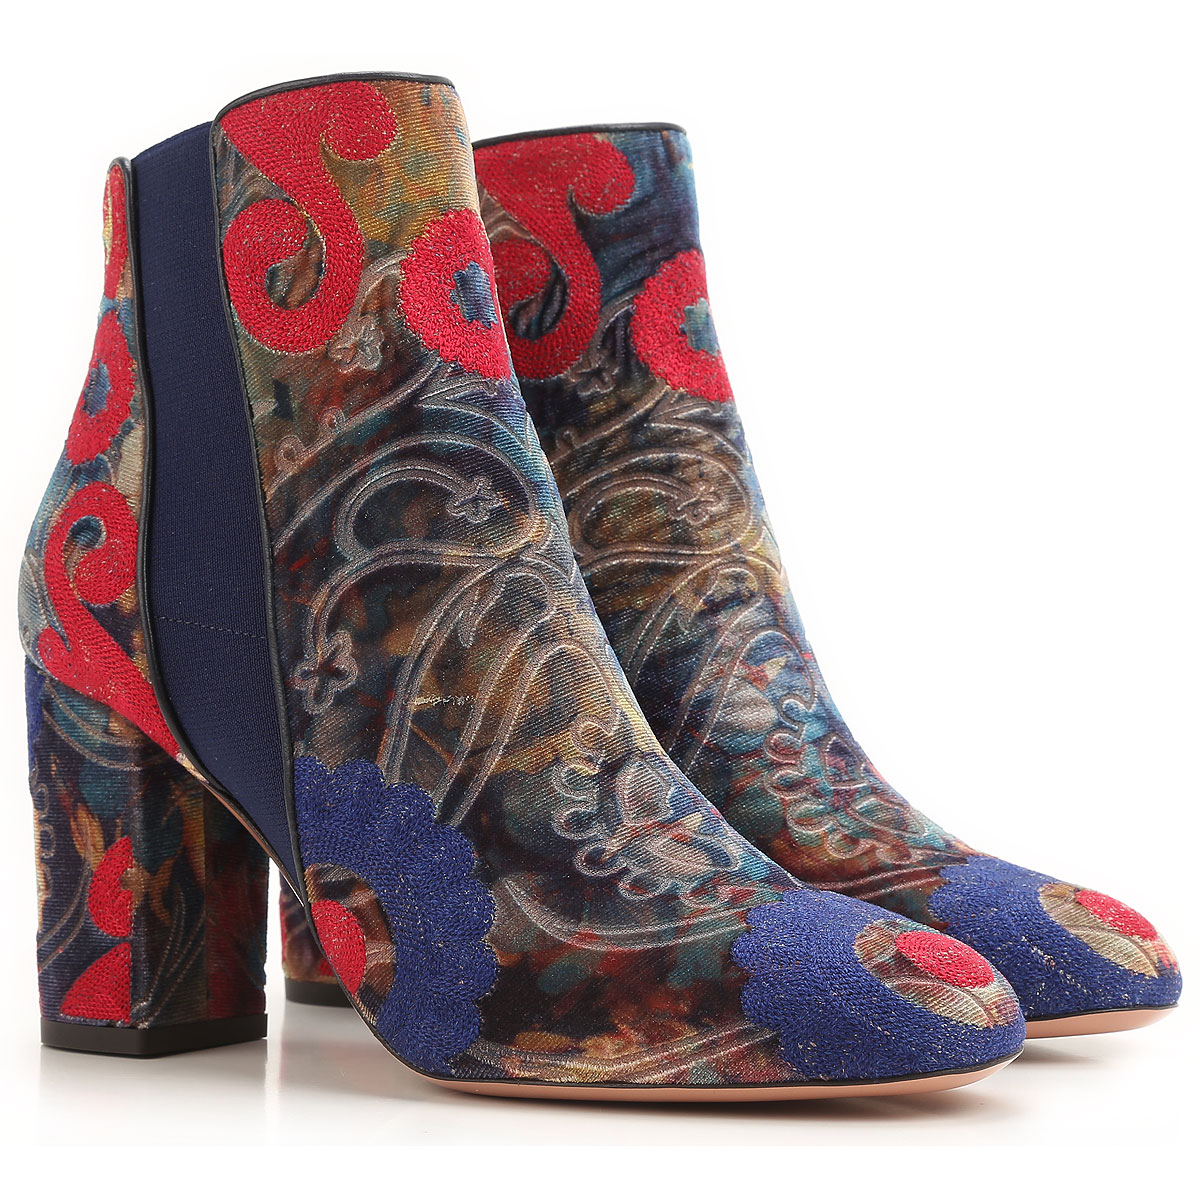 Aquazzura Boots for Women, Booties On Sale in Outlet, Multicolor, Velvet, 2019, 5 6 7